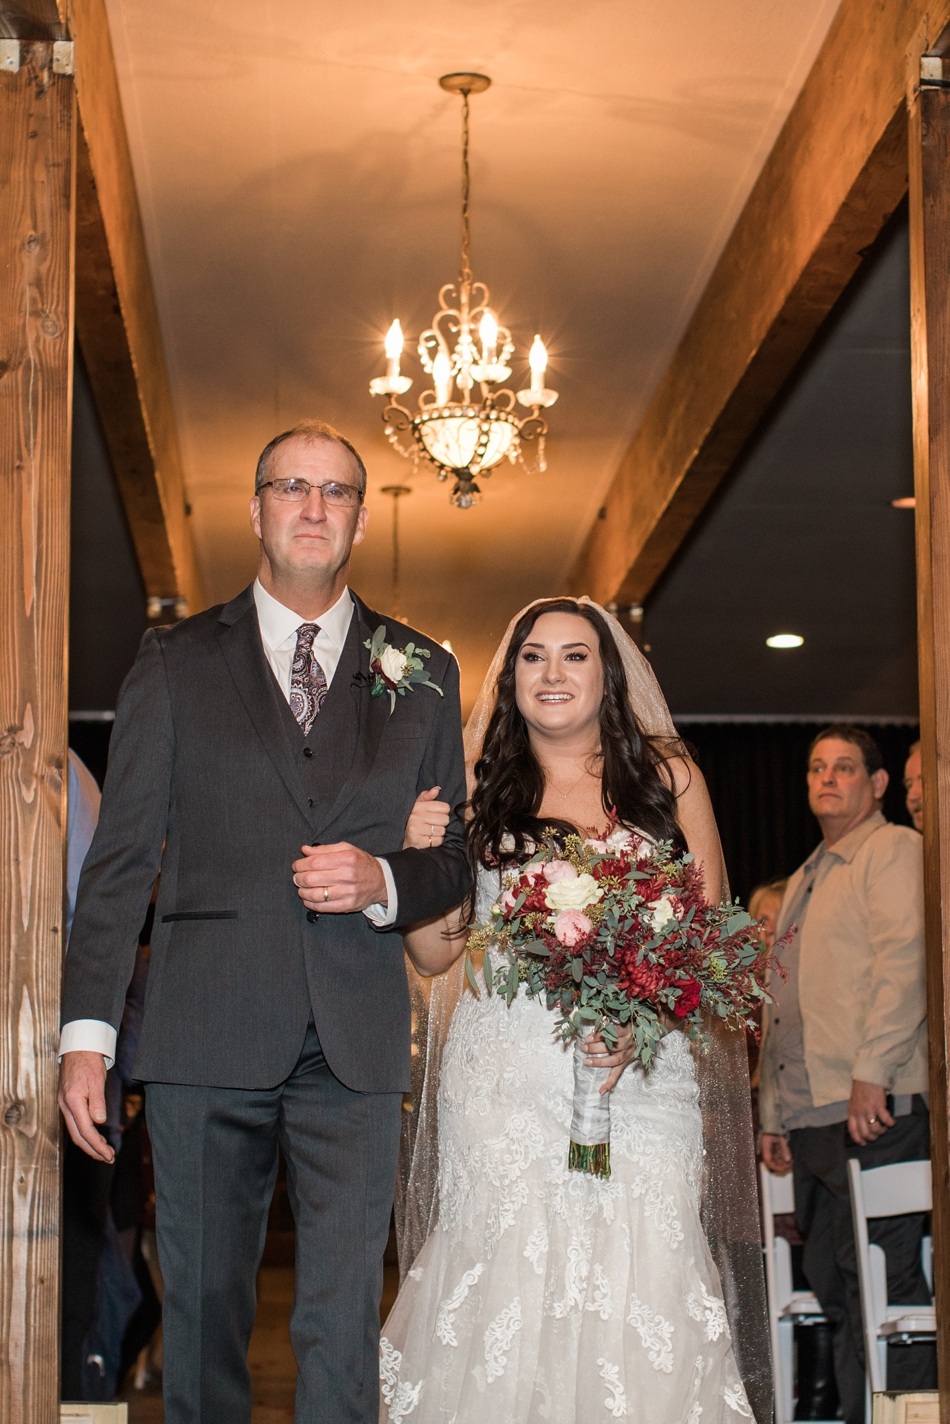 A photo of a groom walking his daughter down the aisle during the ceremony of her winter wedding at Hidden Meadows in Snohomish, a wedding venue near Seattle, WA. | Joanna Monger Photography | Snohomish & Seattle Wedding Photographer